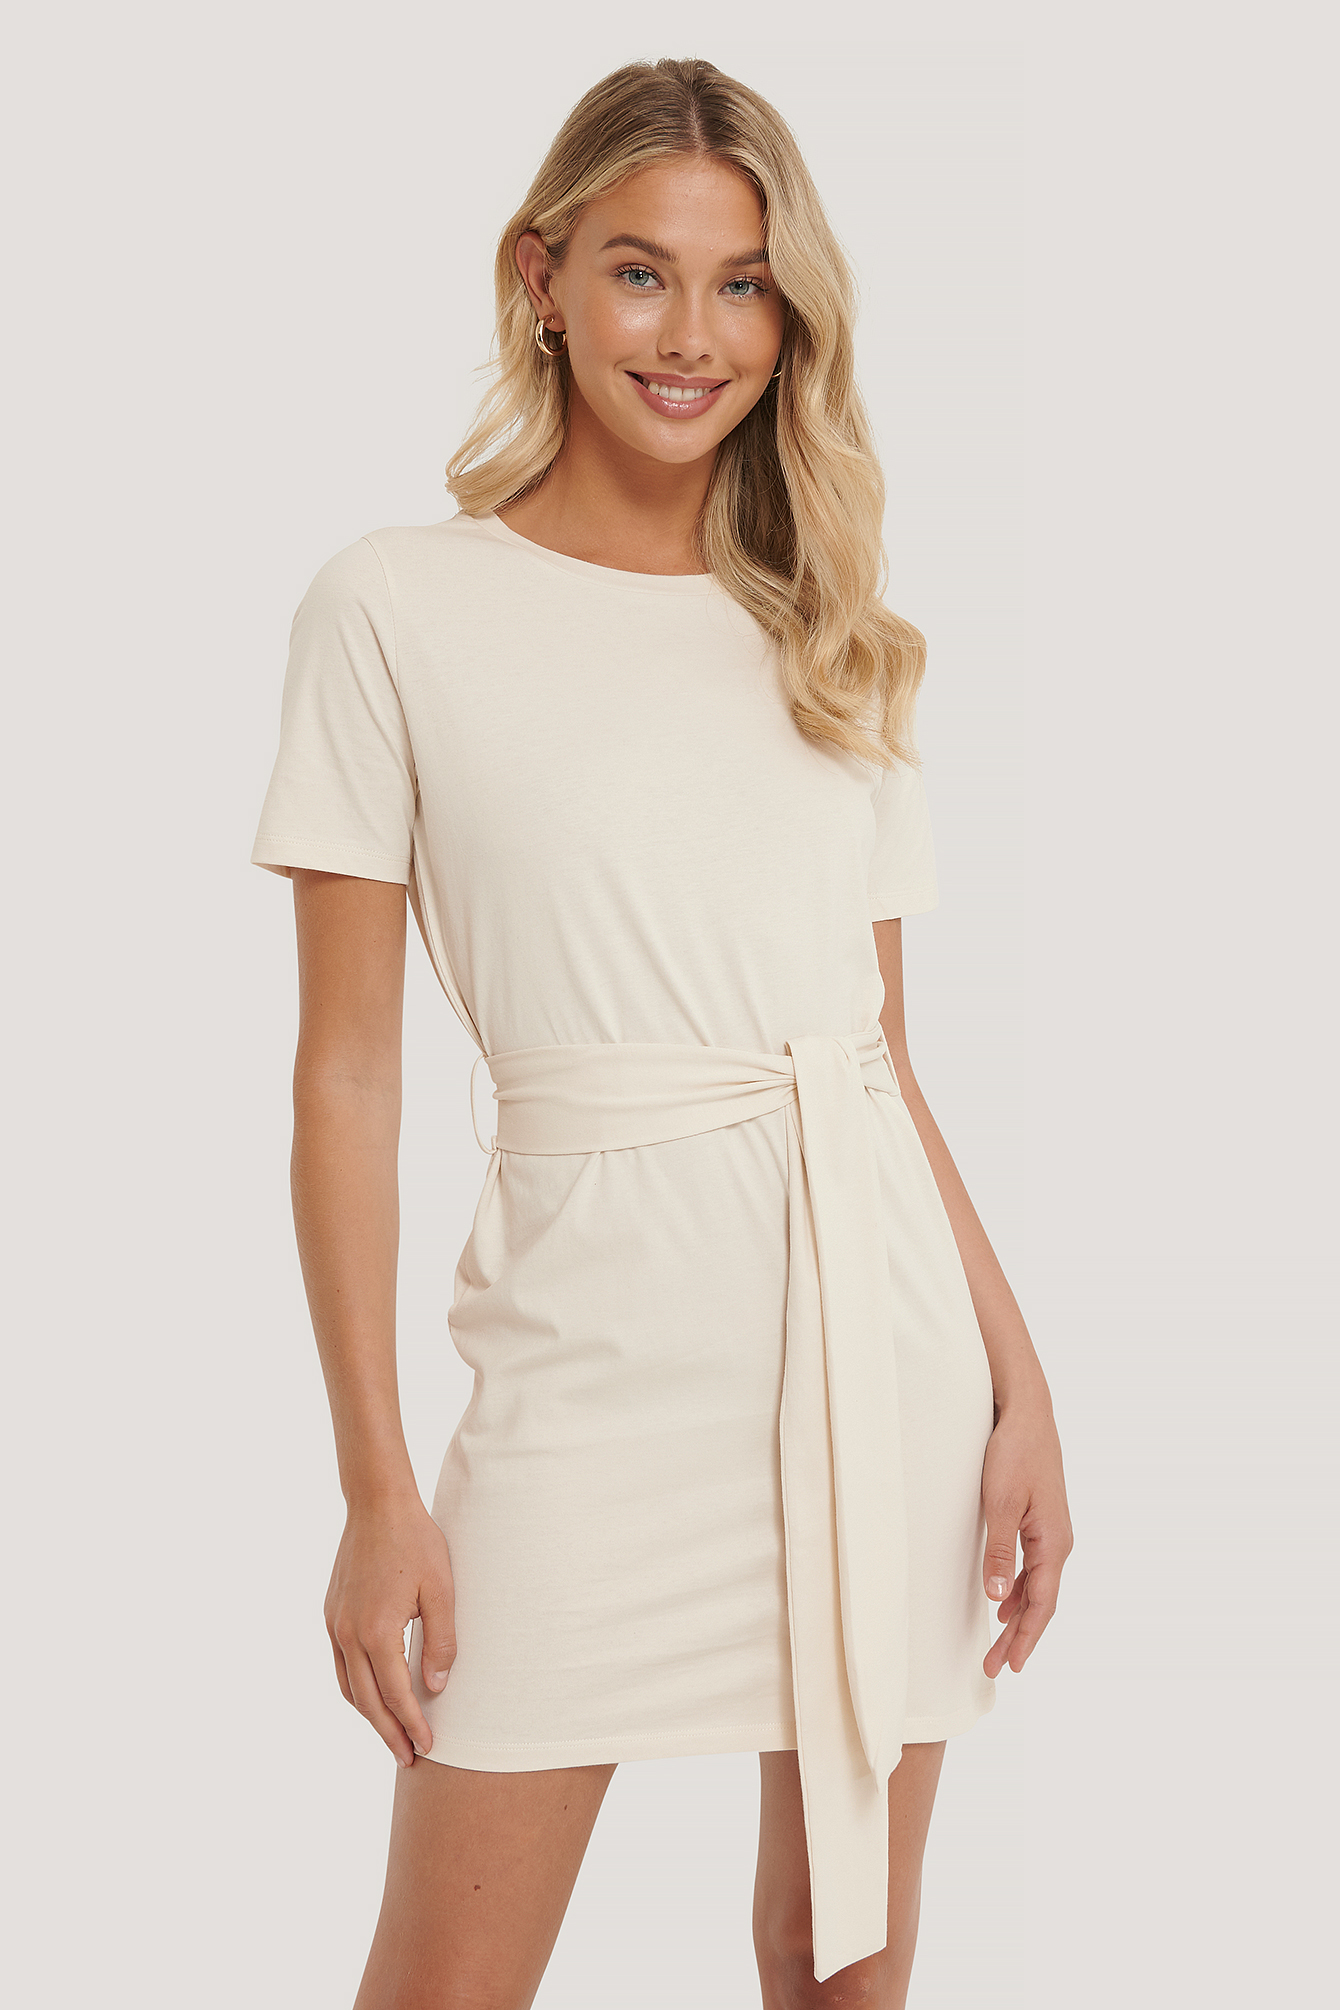 Off White Tie Waist T-shirt Dress